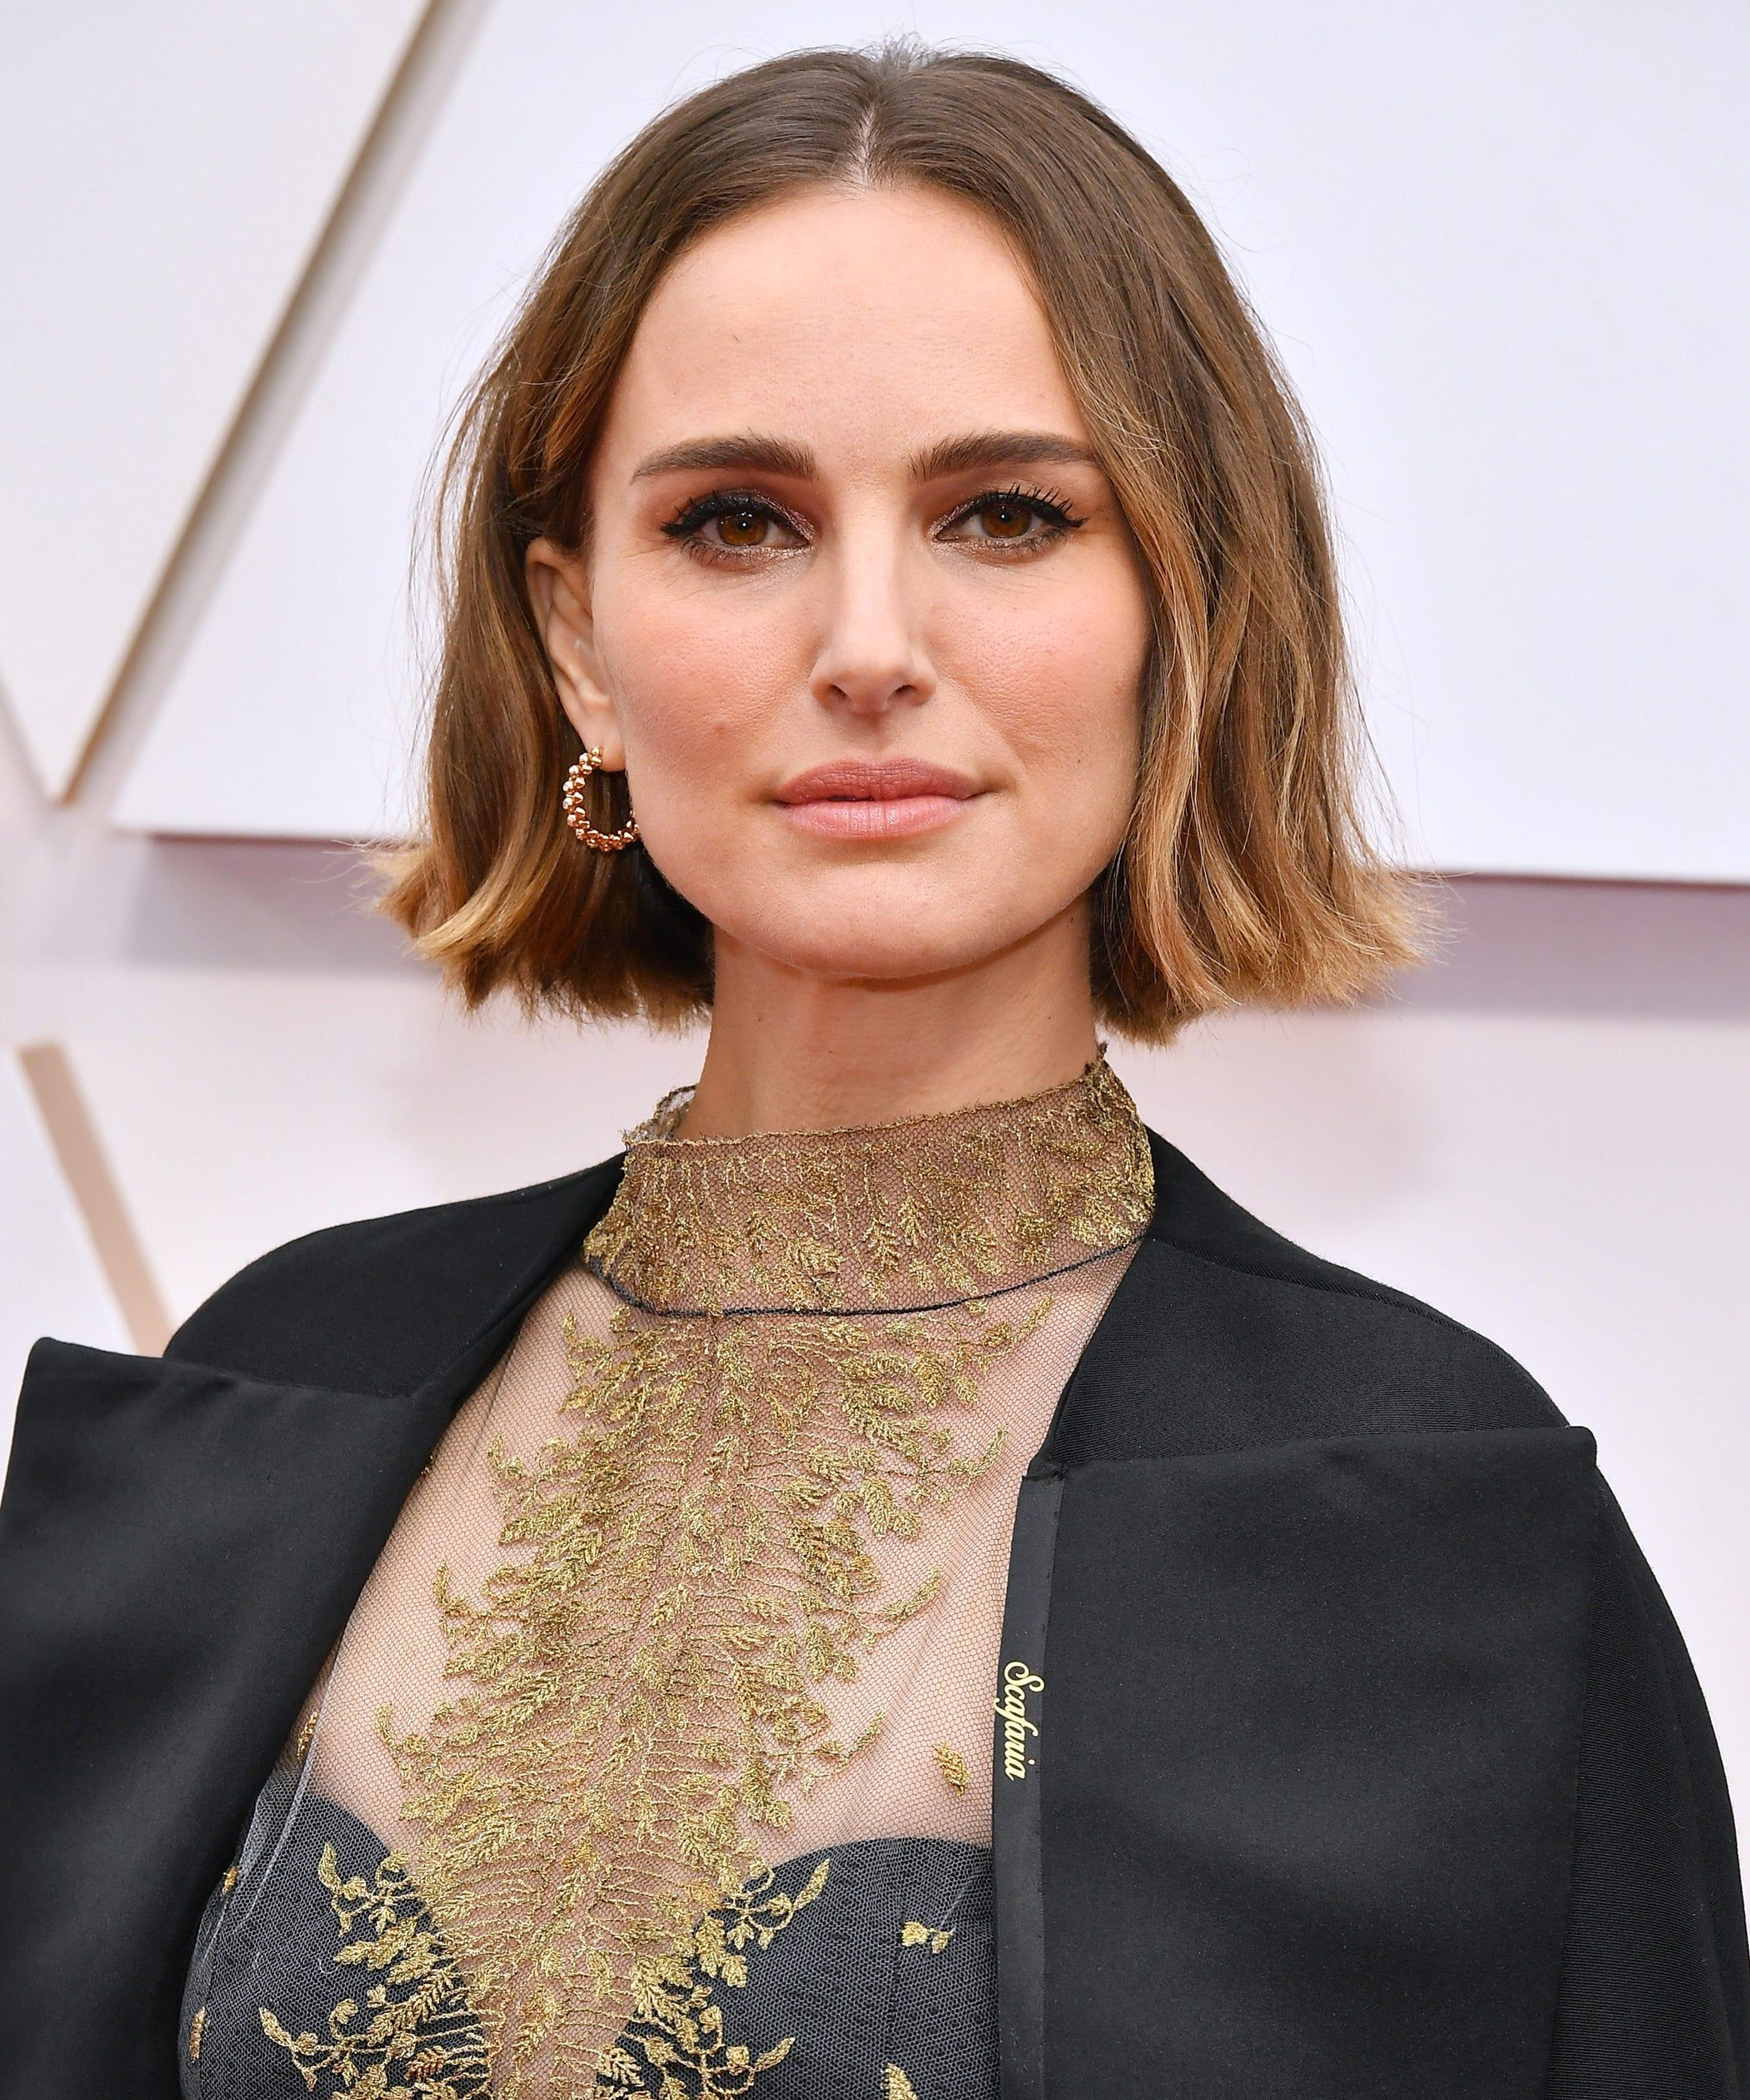 Photo of The $5 Dry Shampoo That Gave Natalie Portman French-Girl Waves At The Oscars